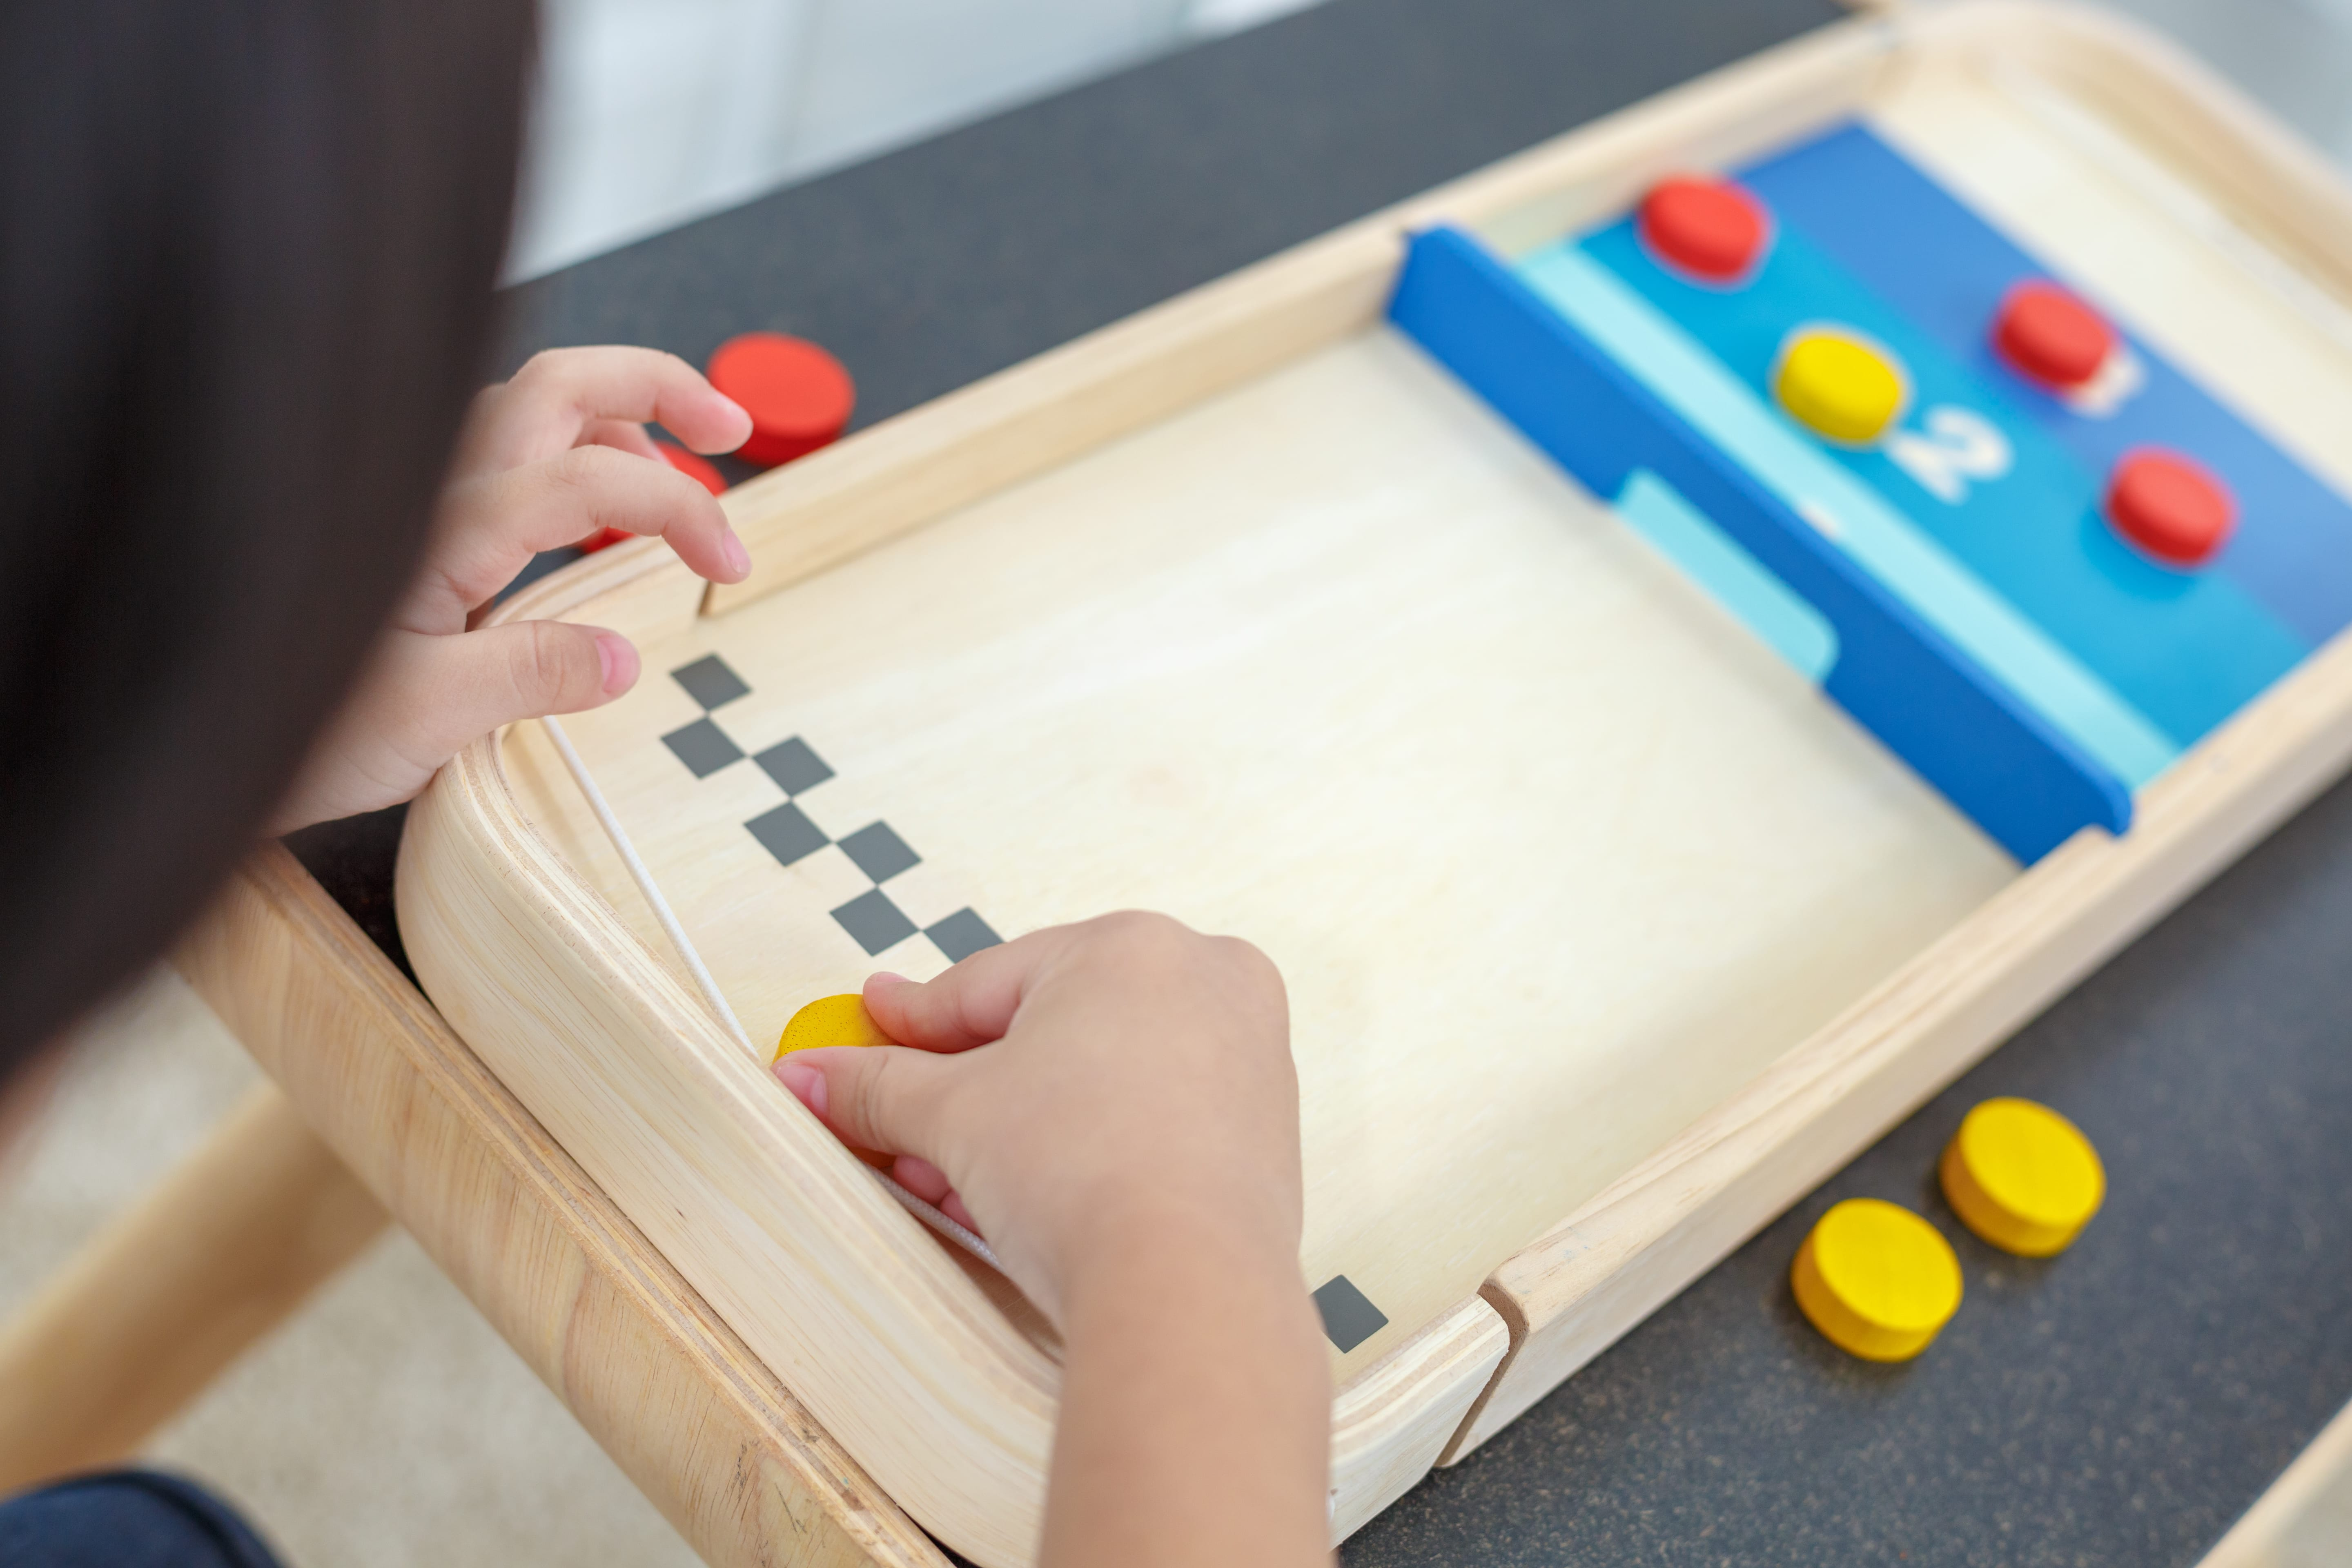 4626_PlanToys_2-IN-1_SHUFFLEBOARD-GAME_Game_and_Puzzles_Fine_Motor_Coordination_Social_Language_and_Communications_Mathematical_3yrs_Wooden_toys_Education_toys_Safety_Toys_Non-toxic_7.jpg